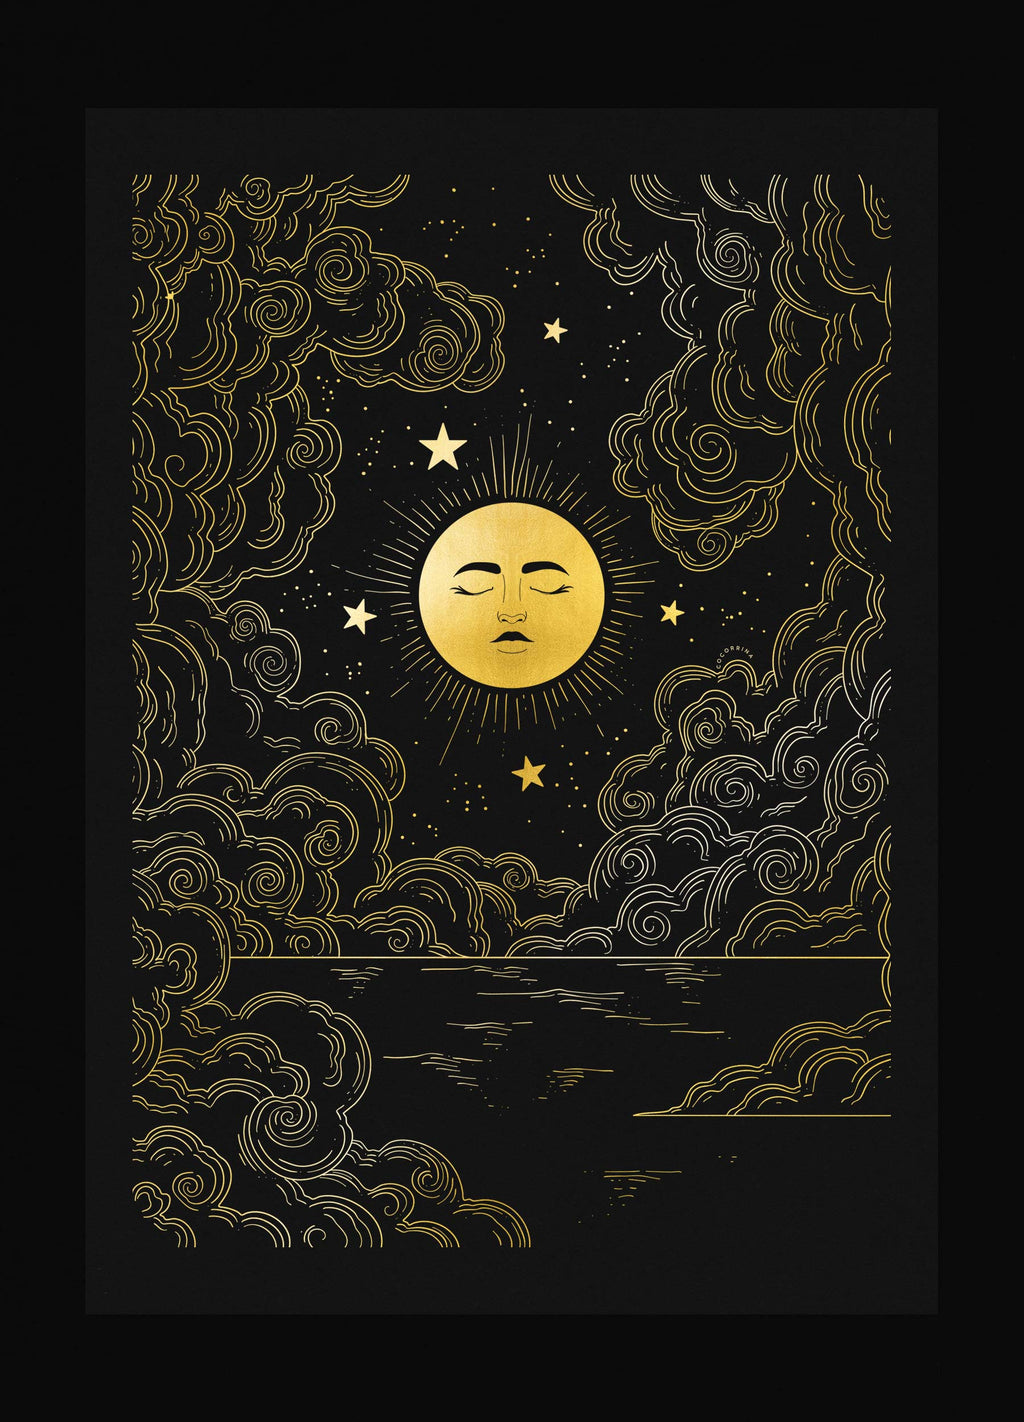 Full Moon glow n the night sky gold foil art print on black paper by Cocorrina & Co